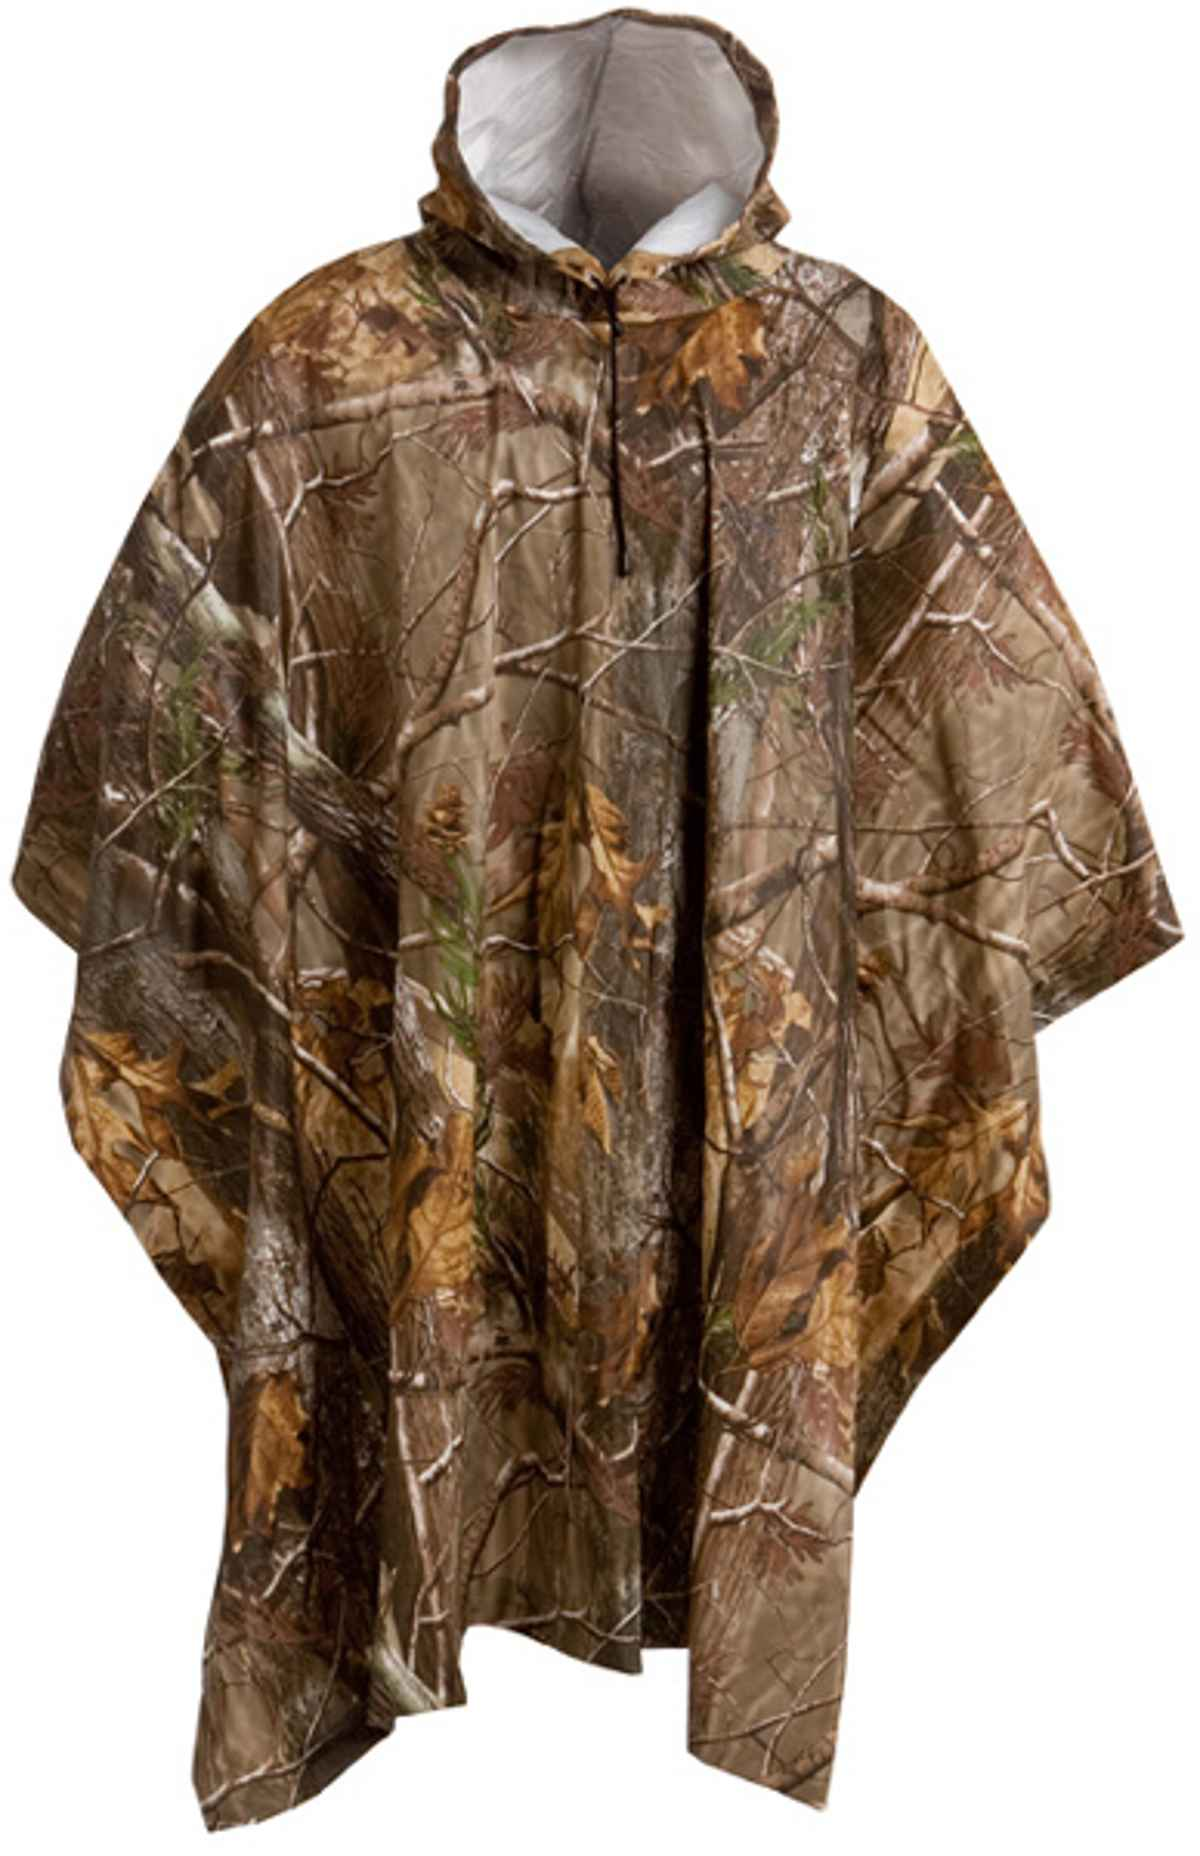 ArcticShield Adult PVC Rain Poncho in Realtree AP Camouflage Universal by Overstock